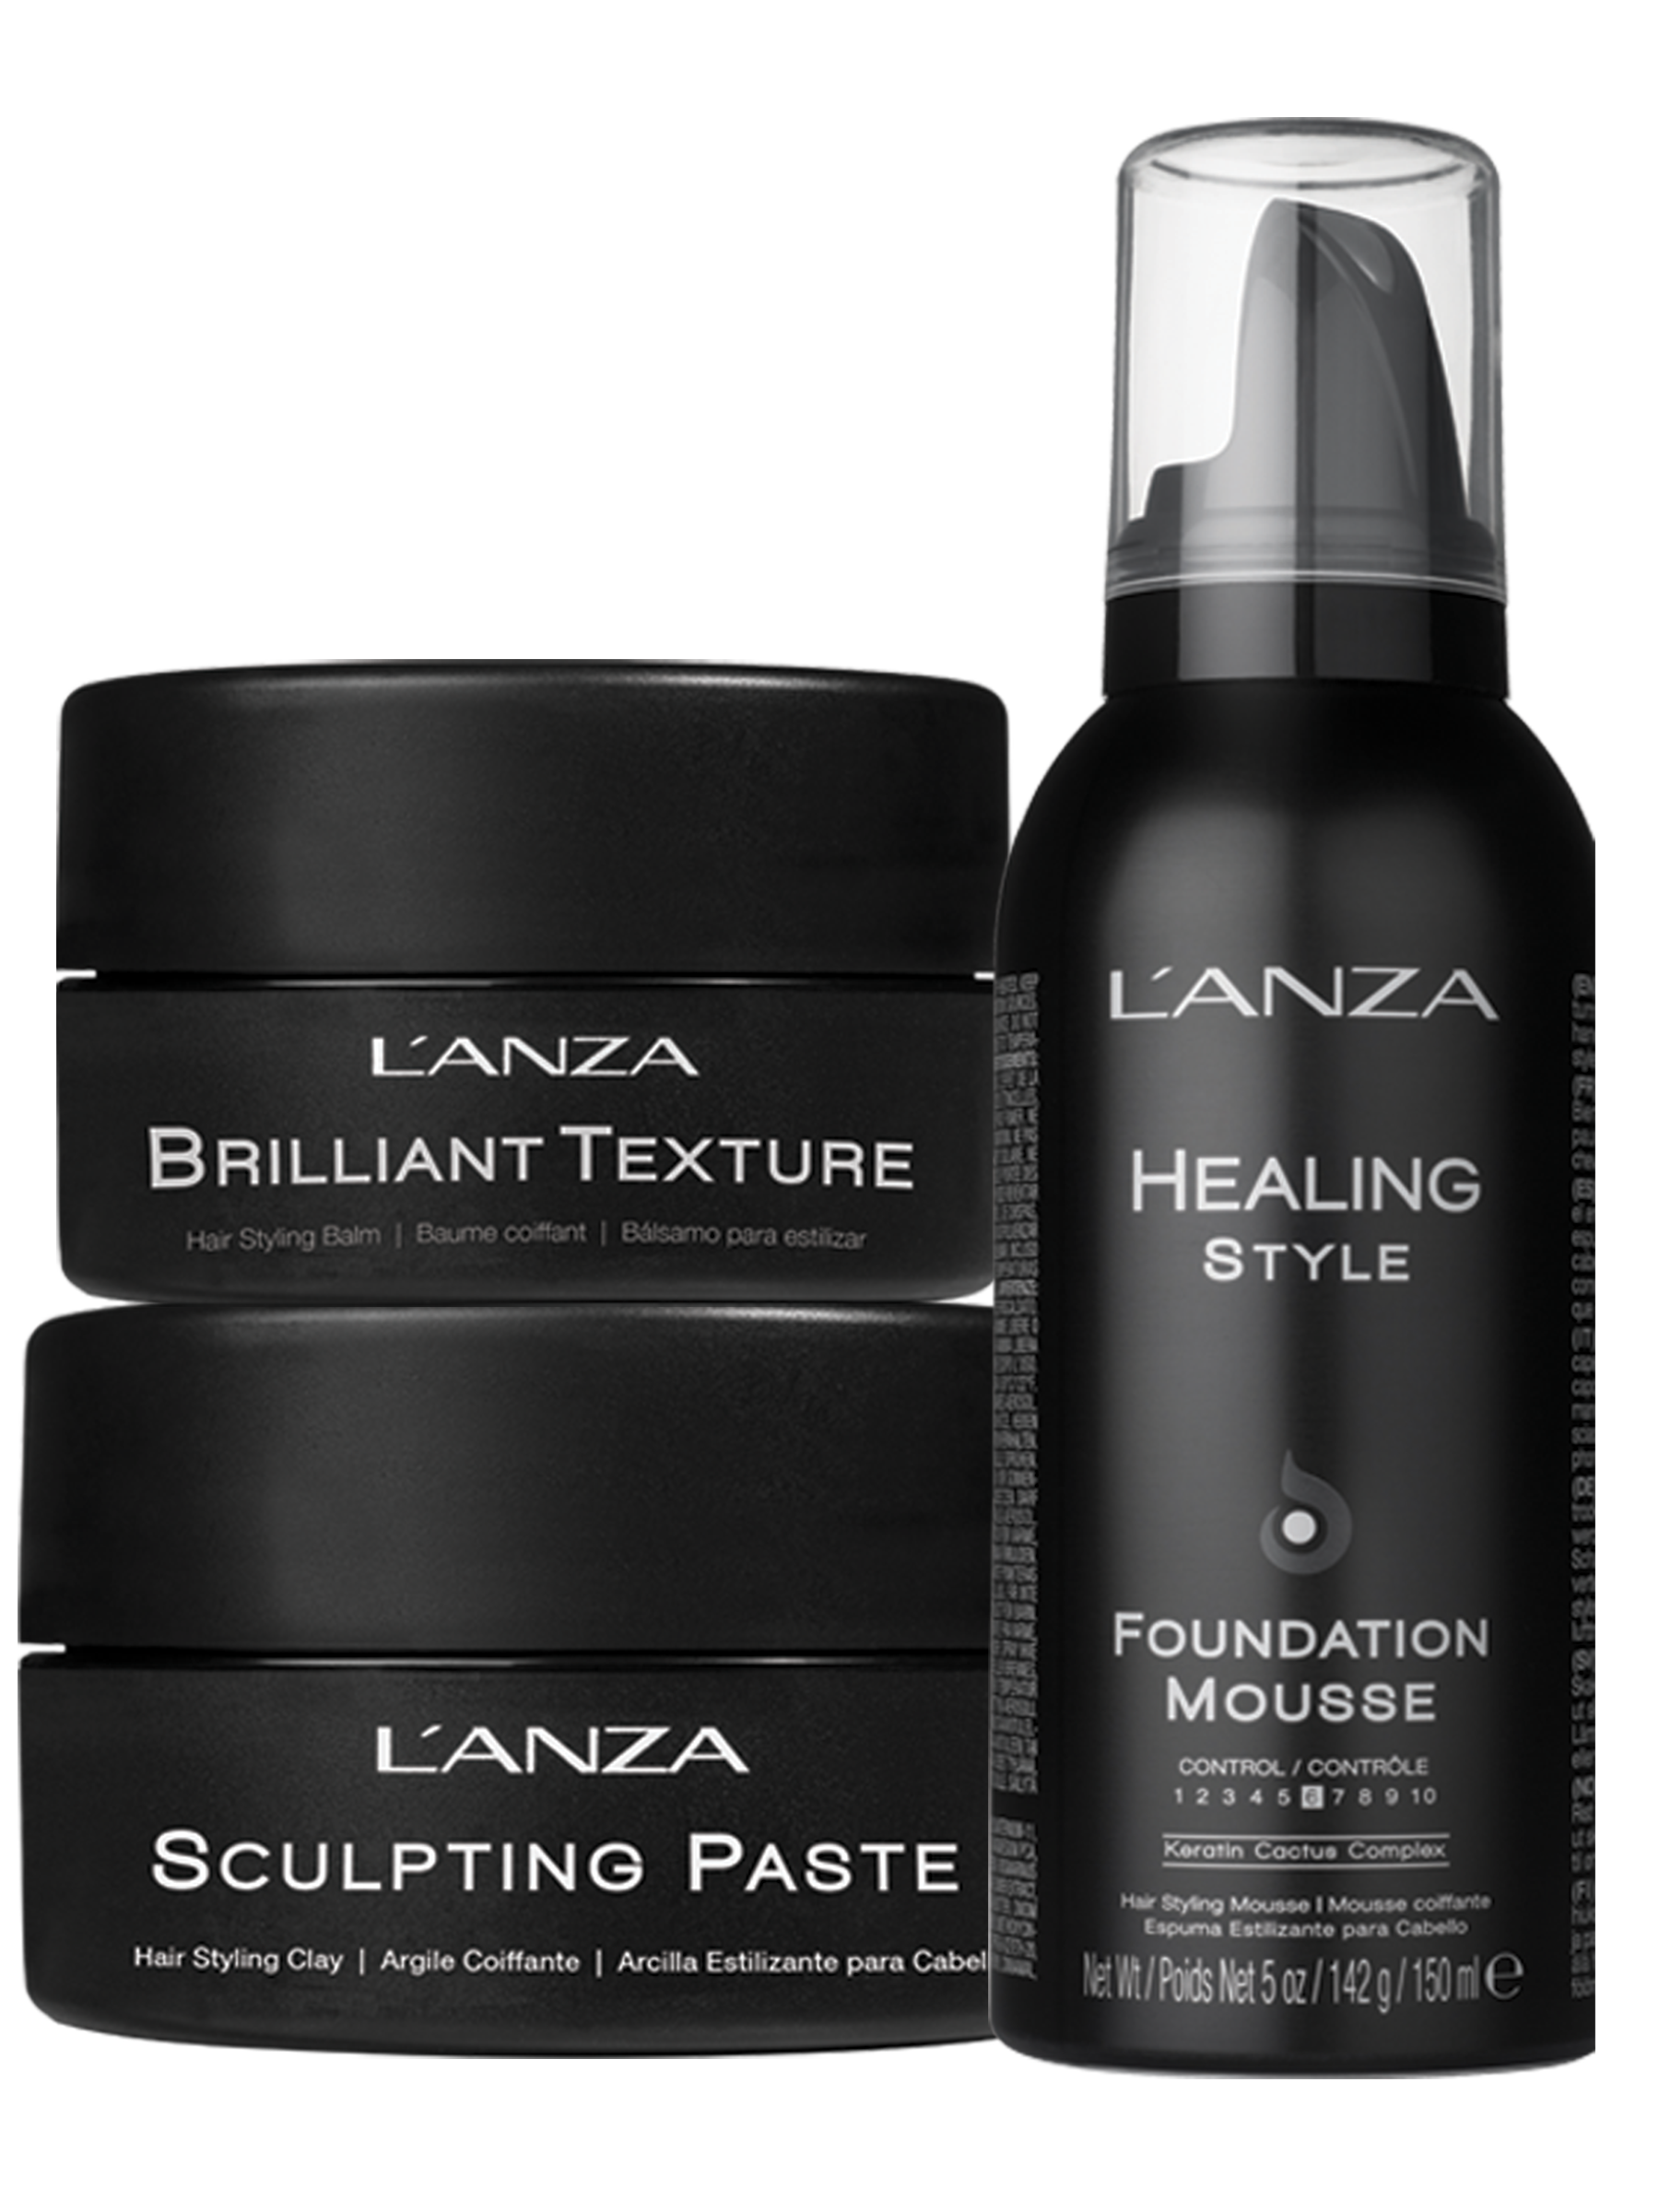 Foundation Mousse, Sculpting Paste and Brilliant Texture—New Products From L'ANZA